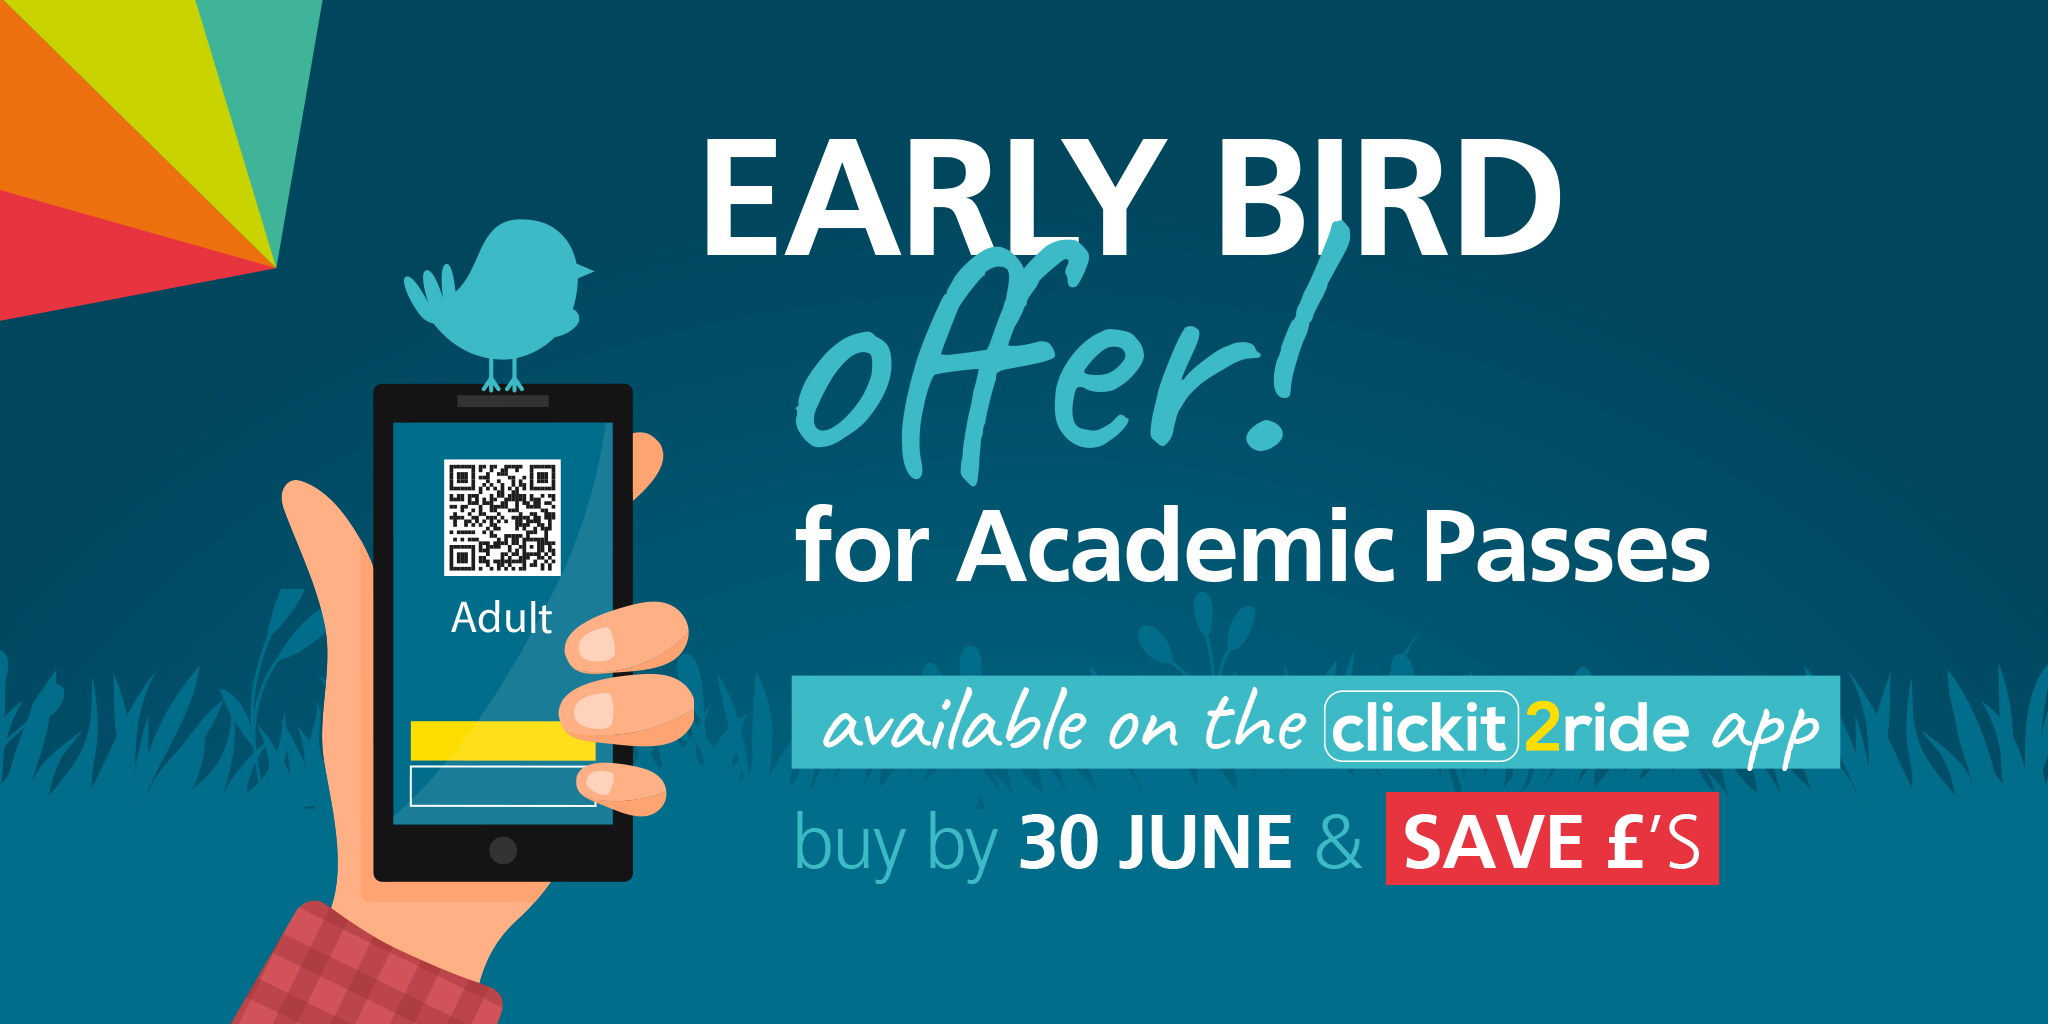 Early Bird Offer for academic passes! Available on the Clickit2ride app. Buy by June 30th and save!